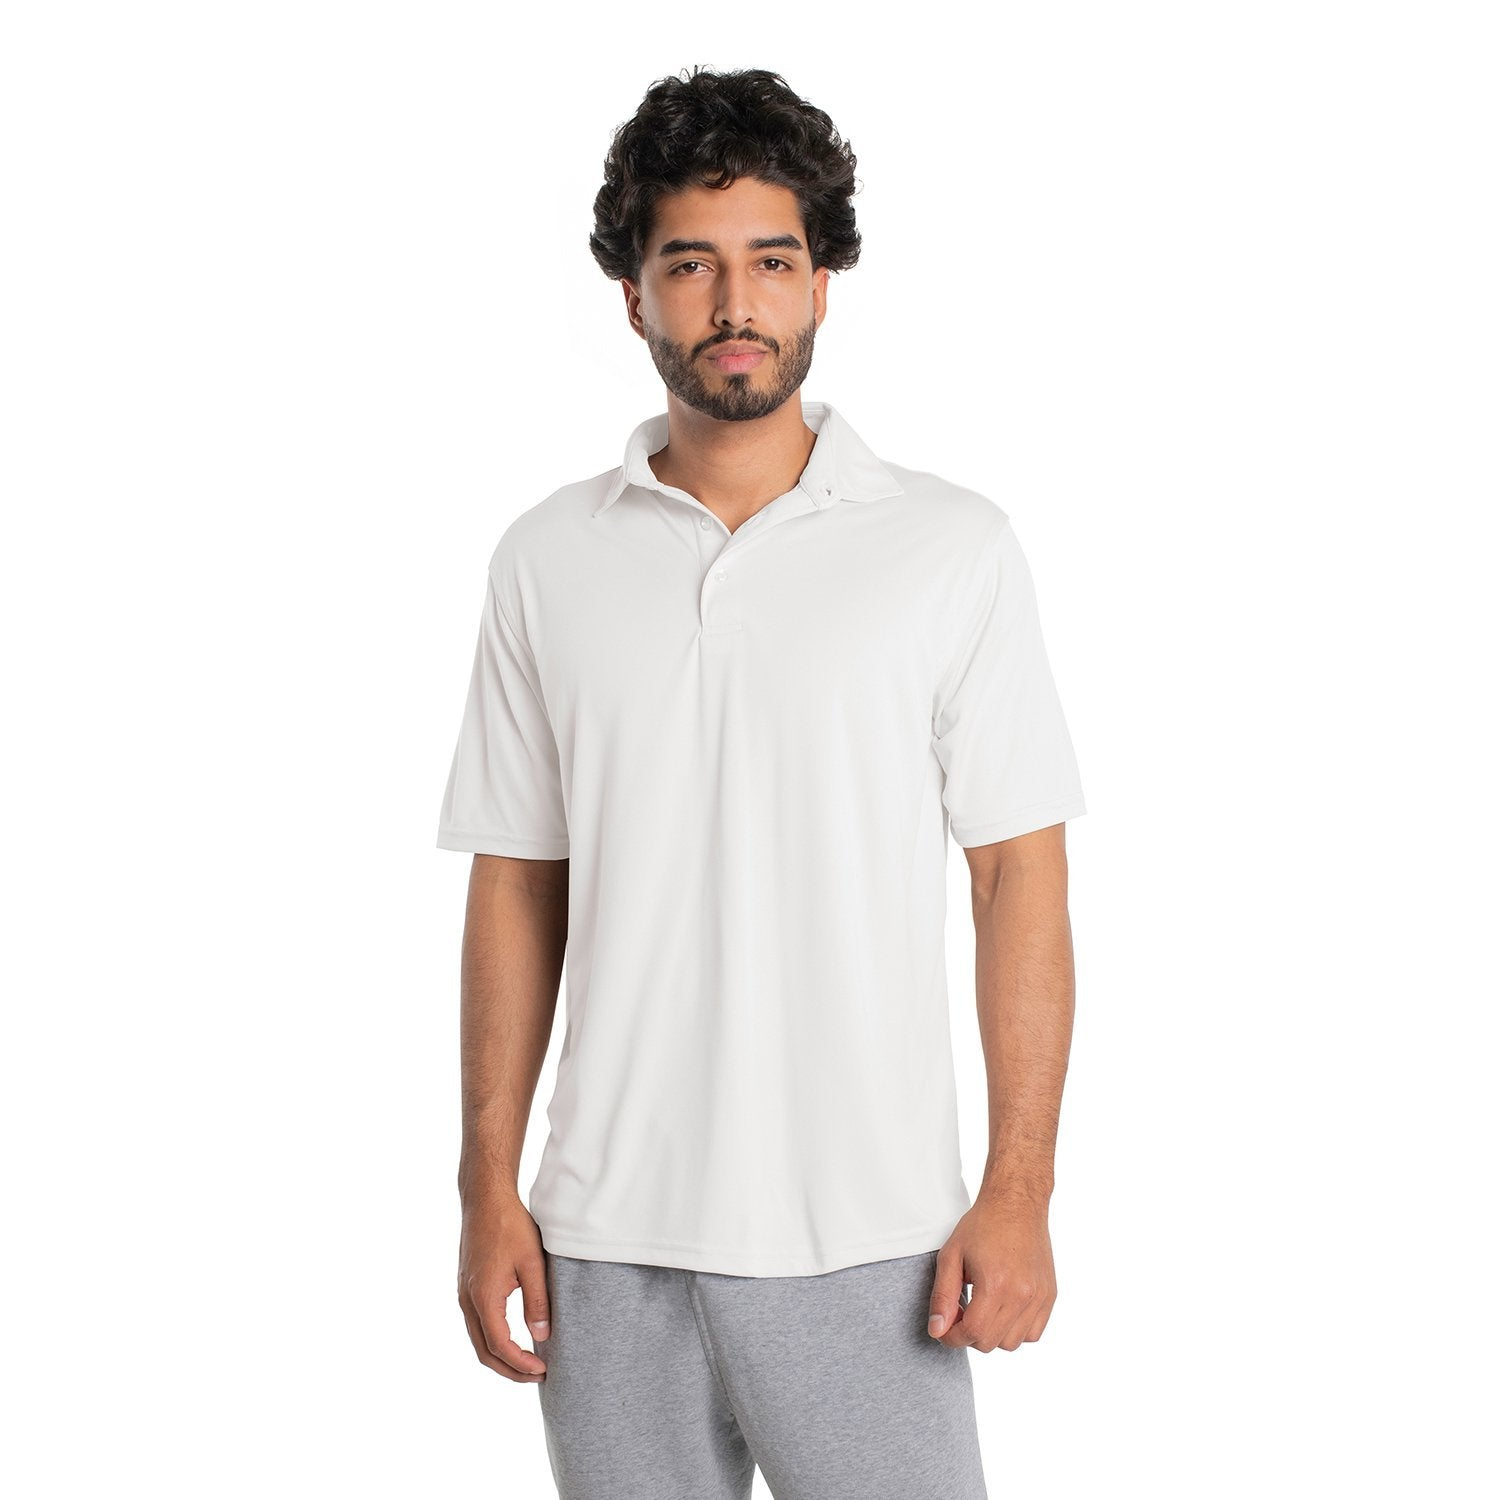 M900WH Solar Polo Short Sleeve - White